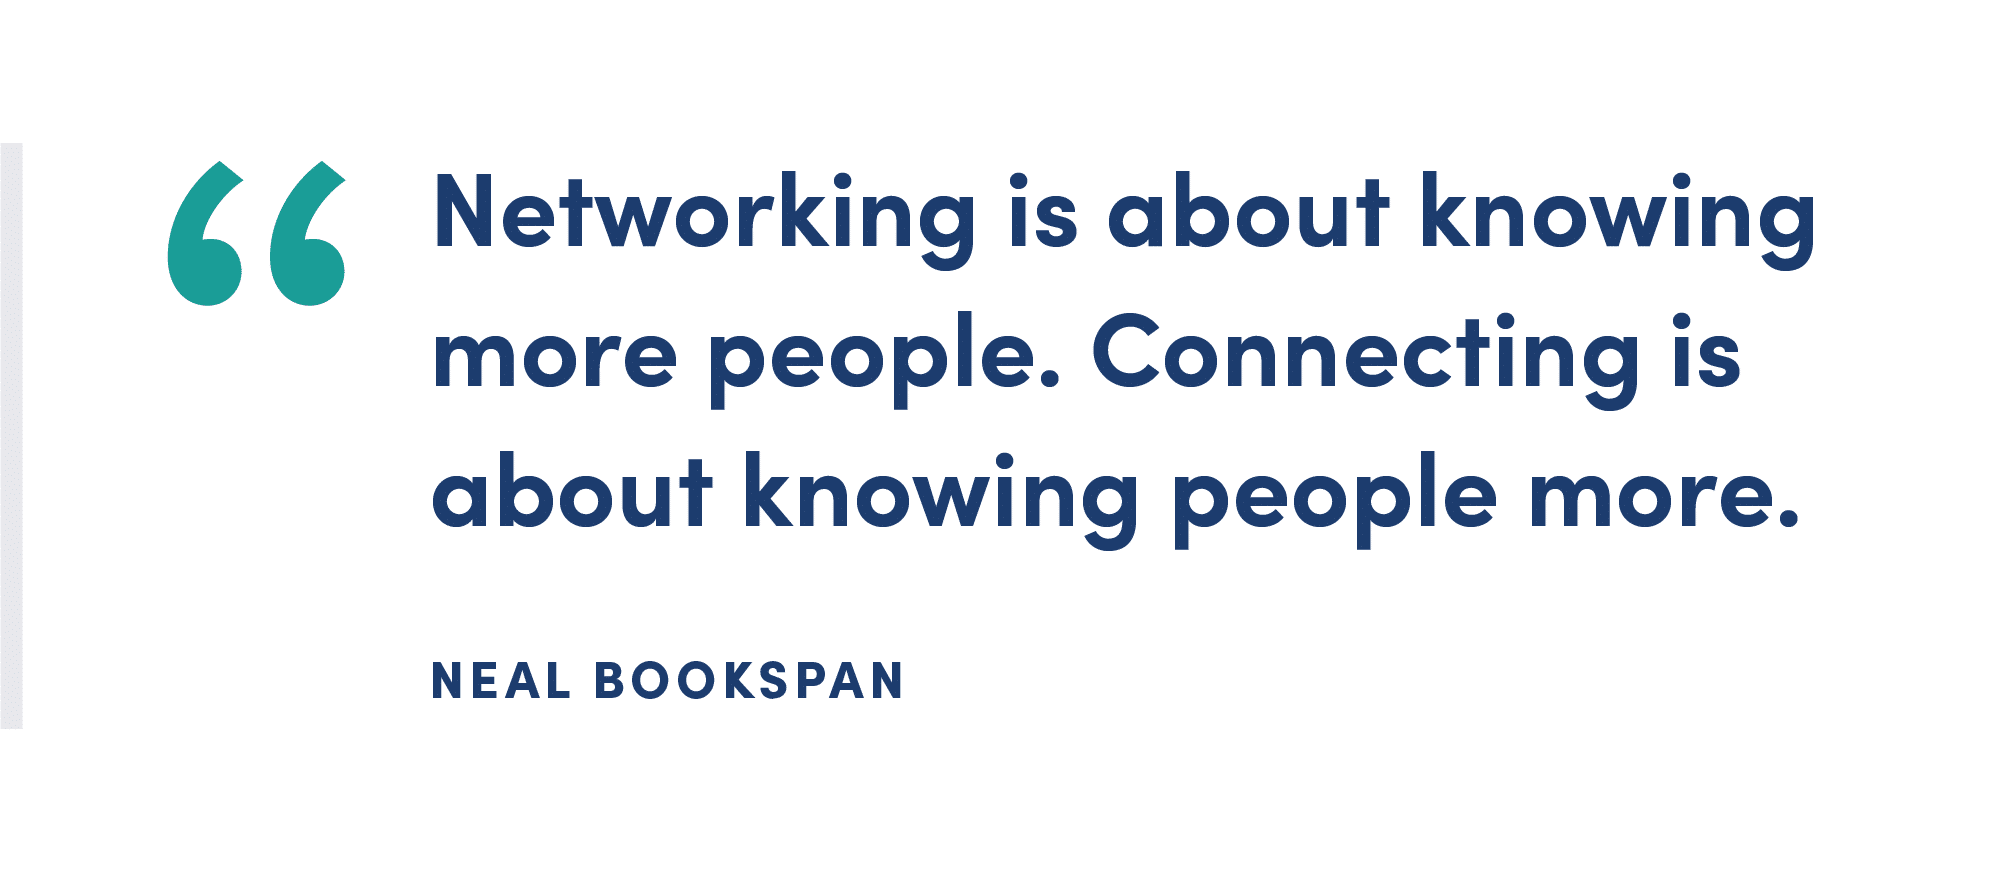 Networking is about knowing more people.